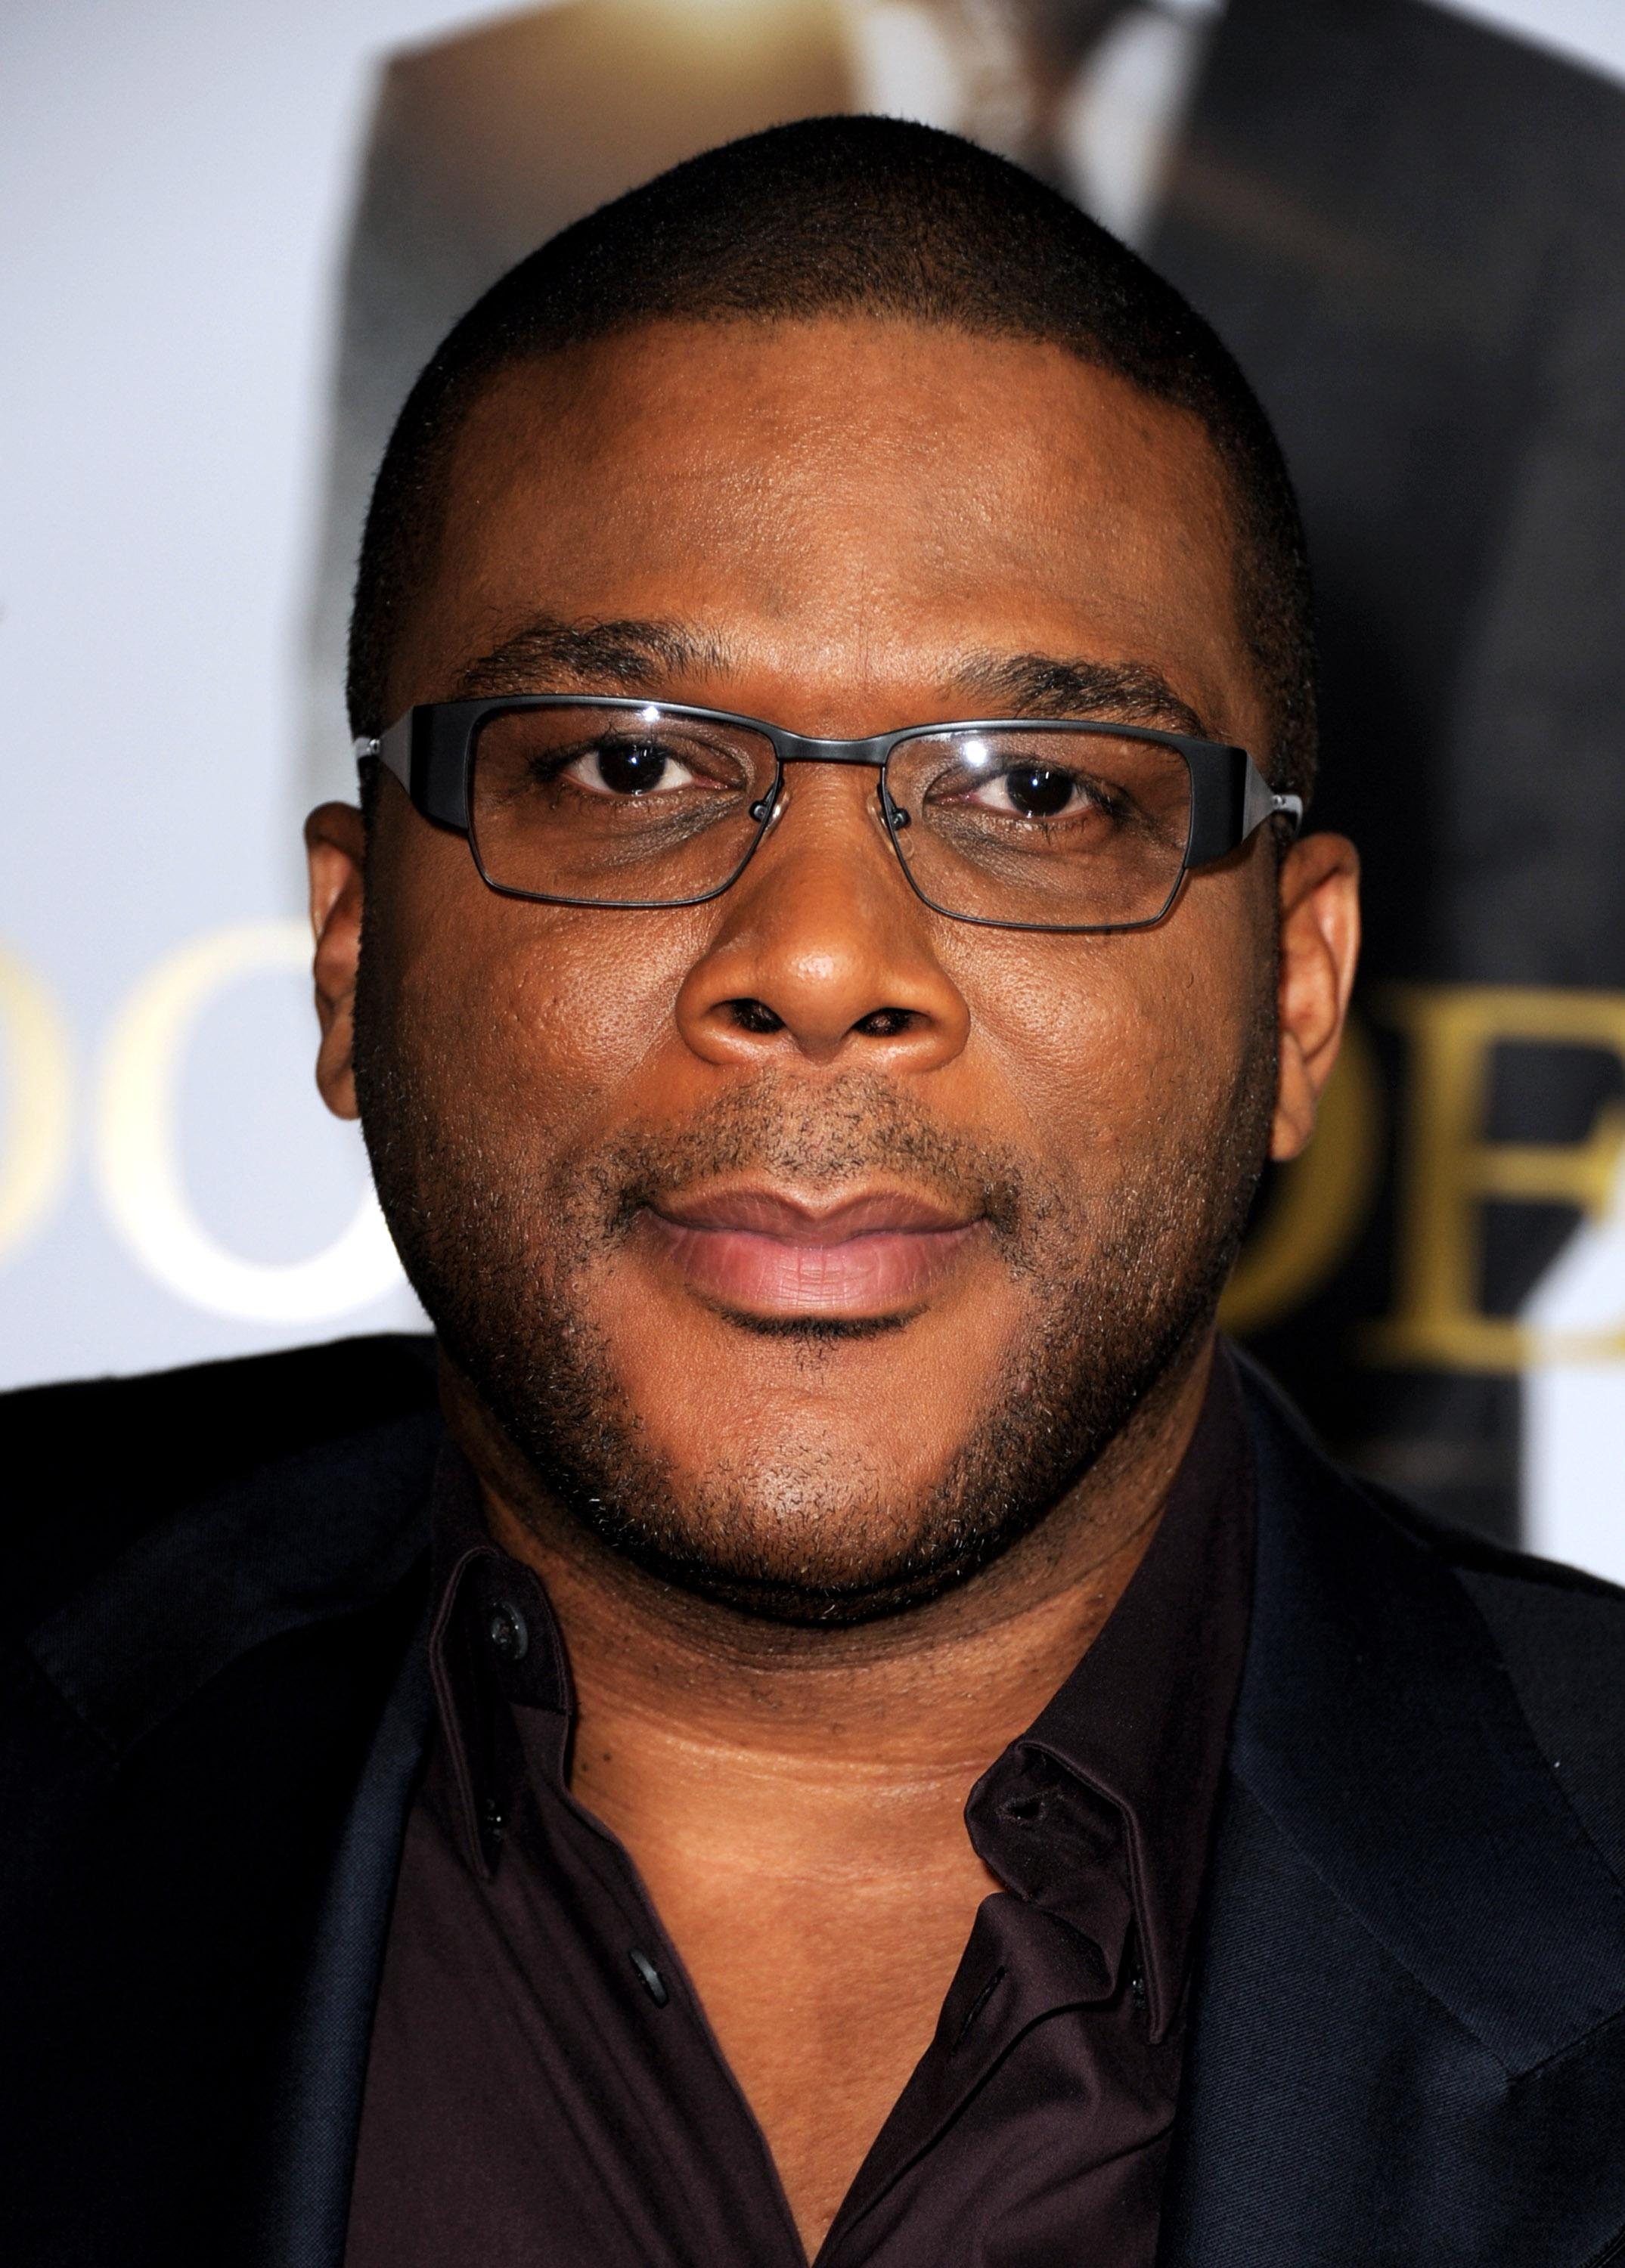 Premiere Of Tyler Perry's 'Good Deeds' - Red Carpet